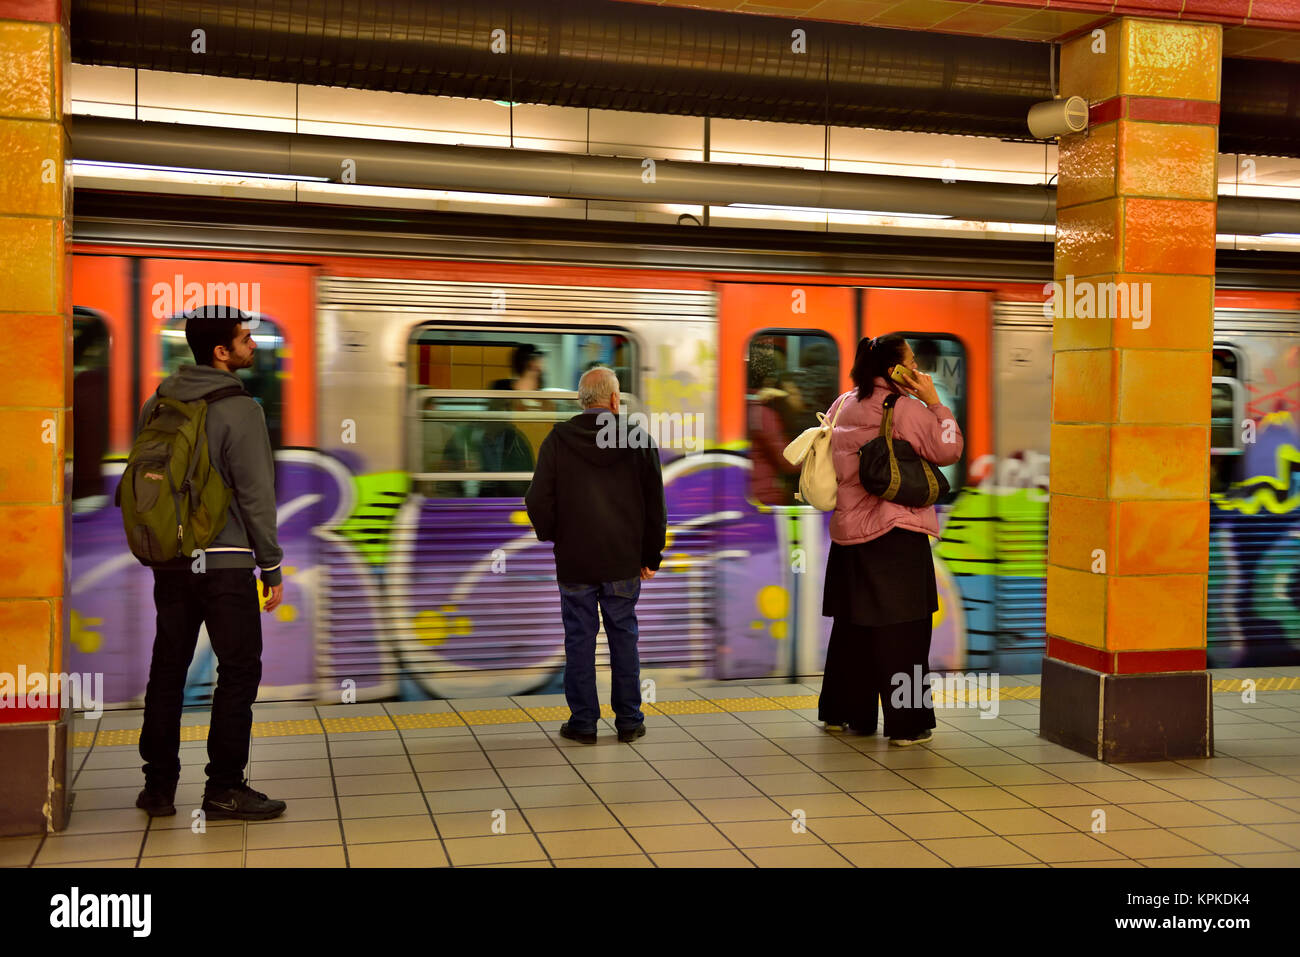 Passengers on platform waiting for train at Omonia metro station, Athens, Greece - Stock Image